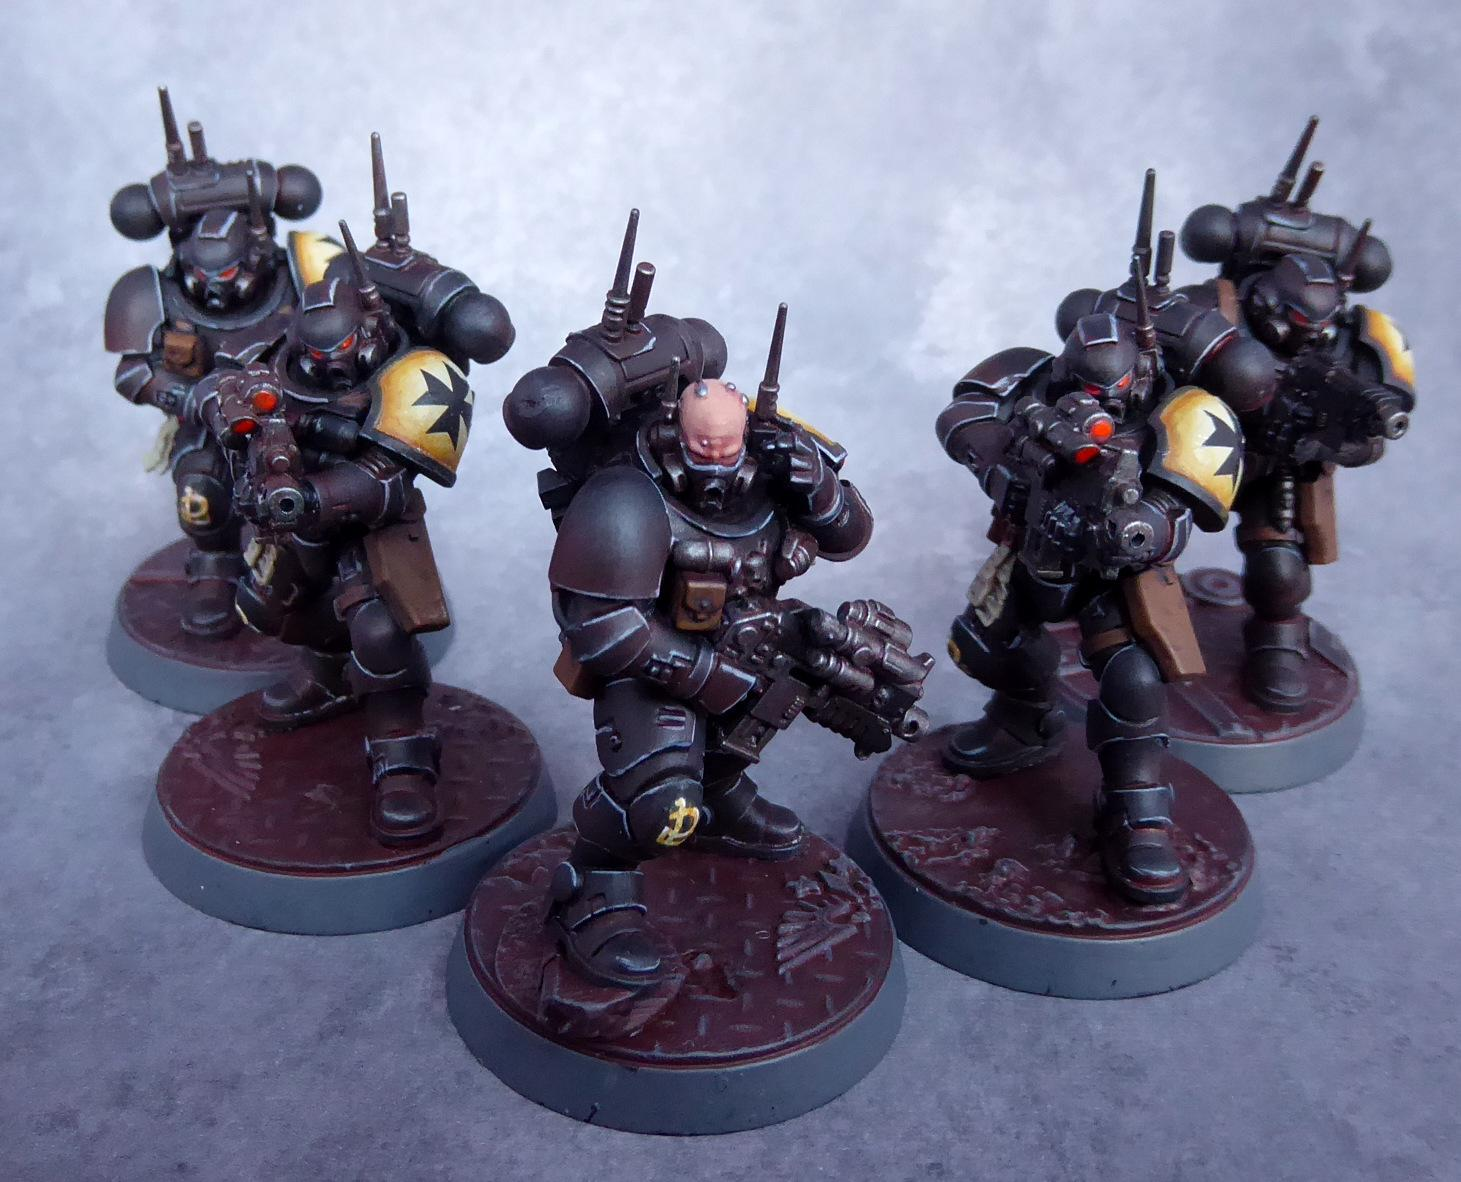 Black Templars, Infiltrators, Primaris, Space Marines, Vanguard